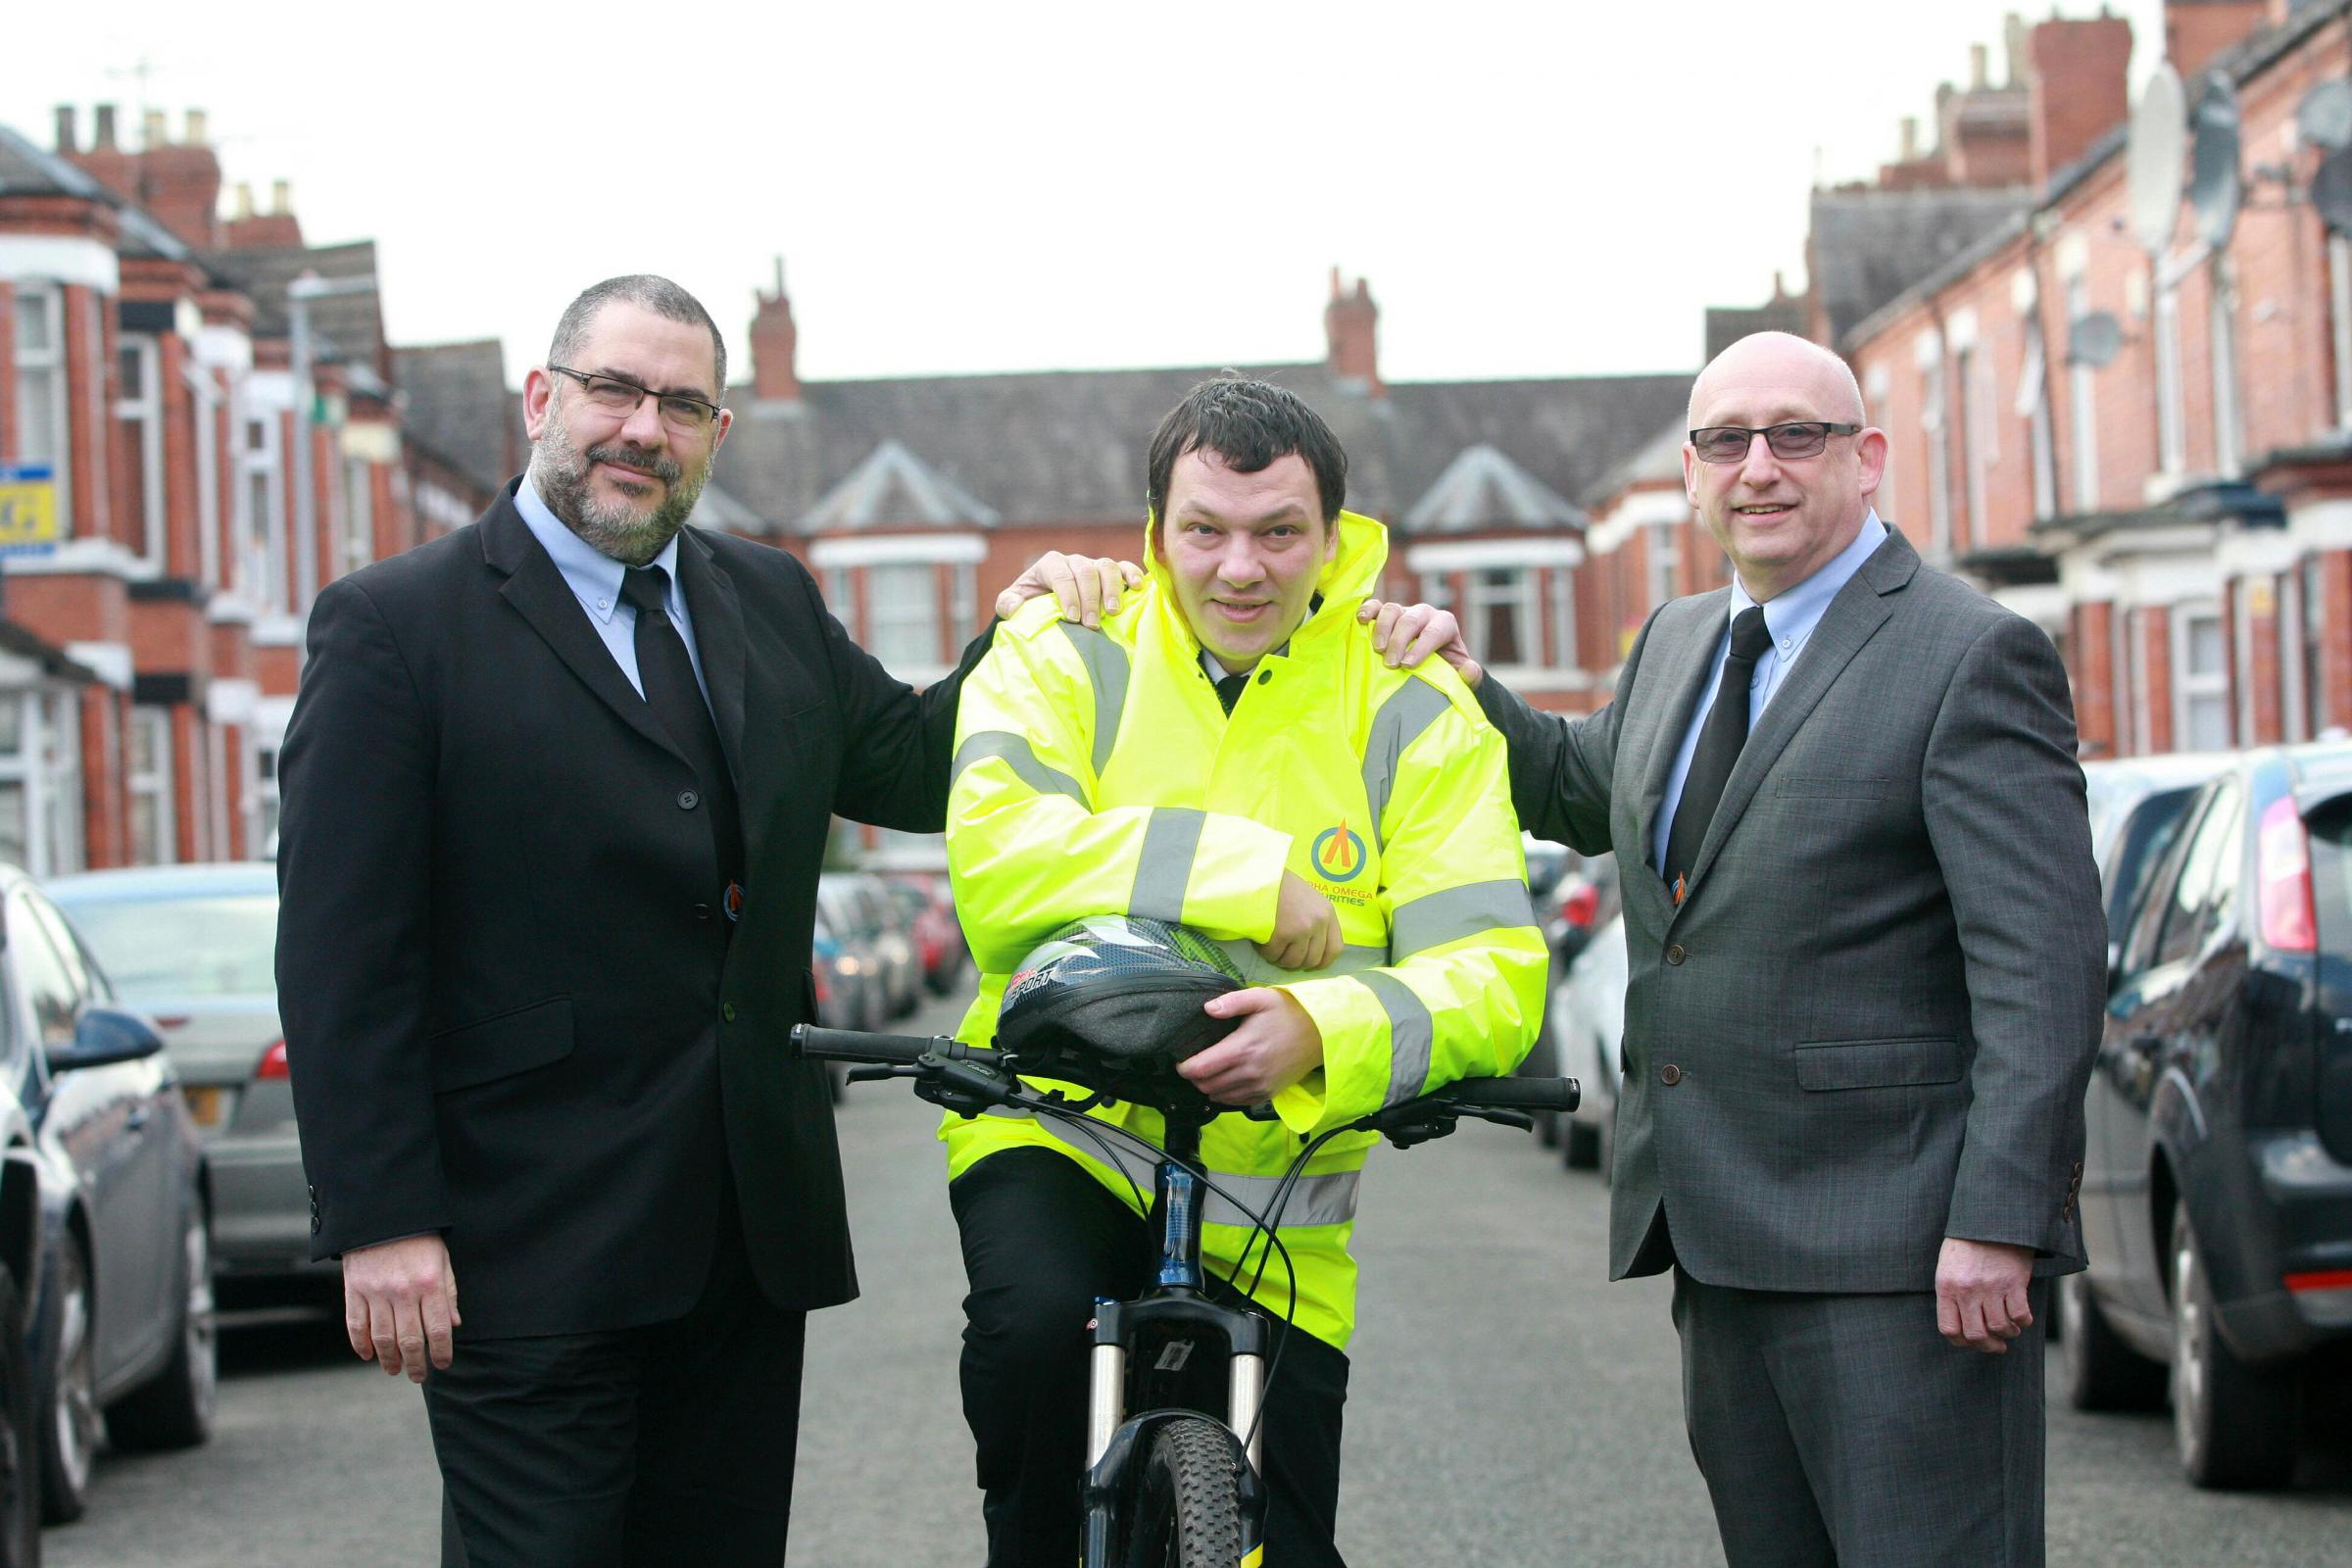 Alpha Omega managing director Ken Lawton (right) with new Operations Director Andy Taylor and security guard Andre Smith who has signed up to the bike scheme